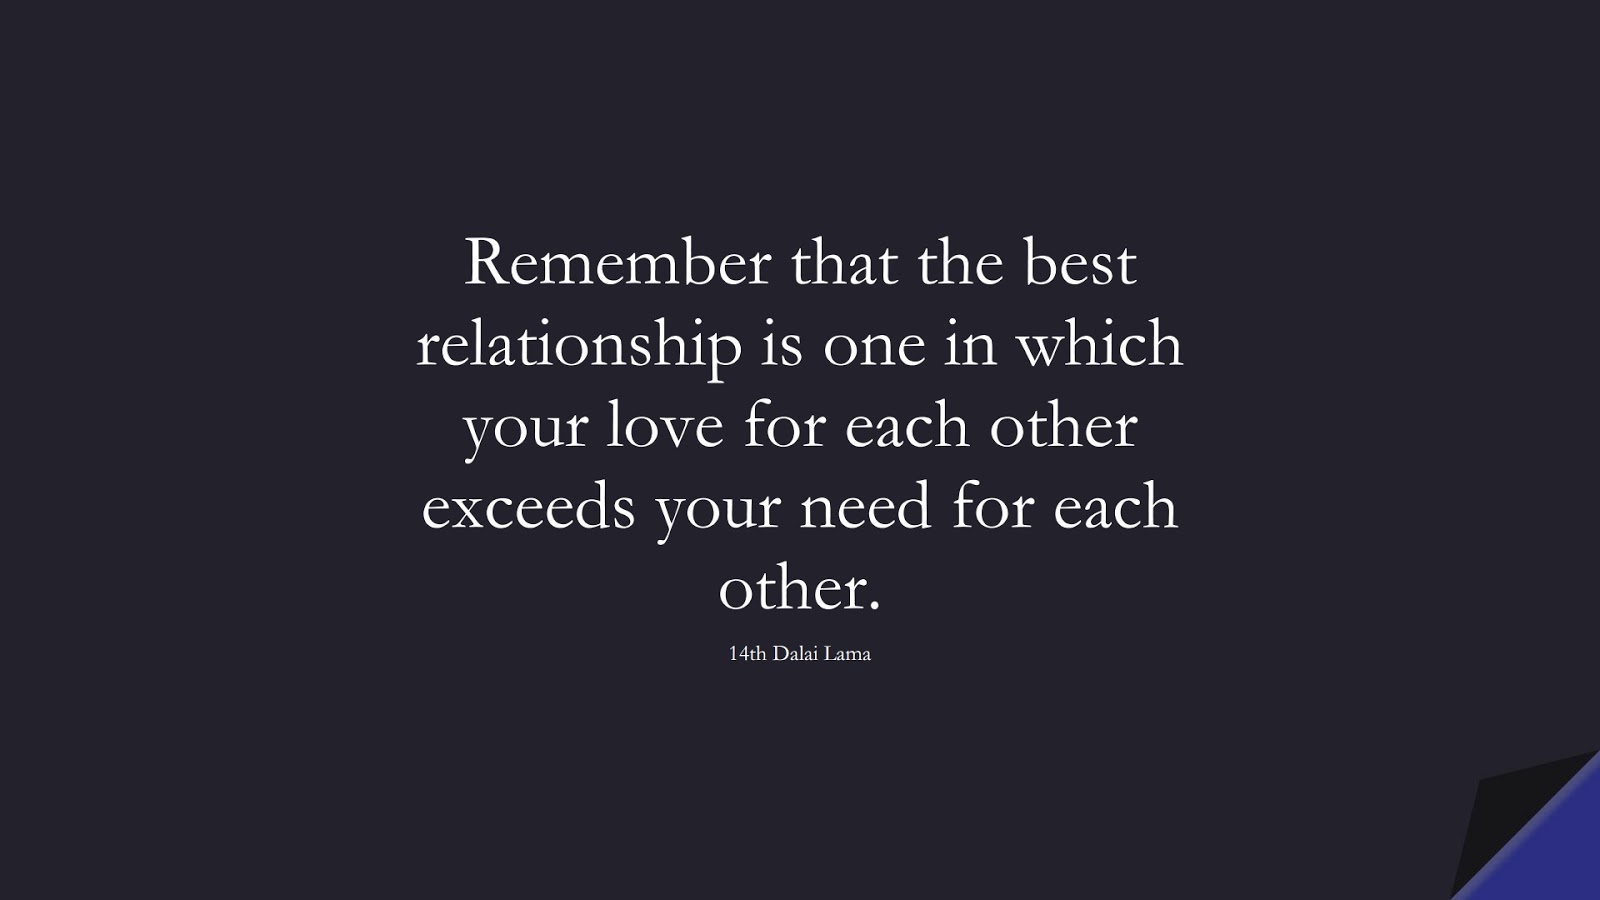 Remember that the best relationship is one in which your love for each other exceeds your need for each other. (14th Dalai Lama);  #RelationshipQuotes